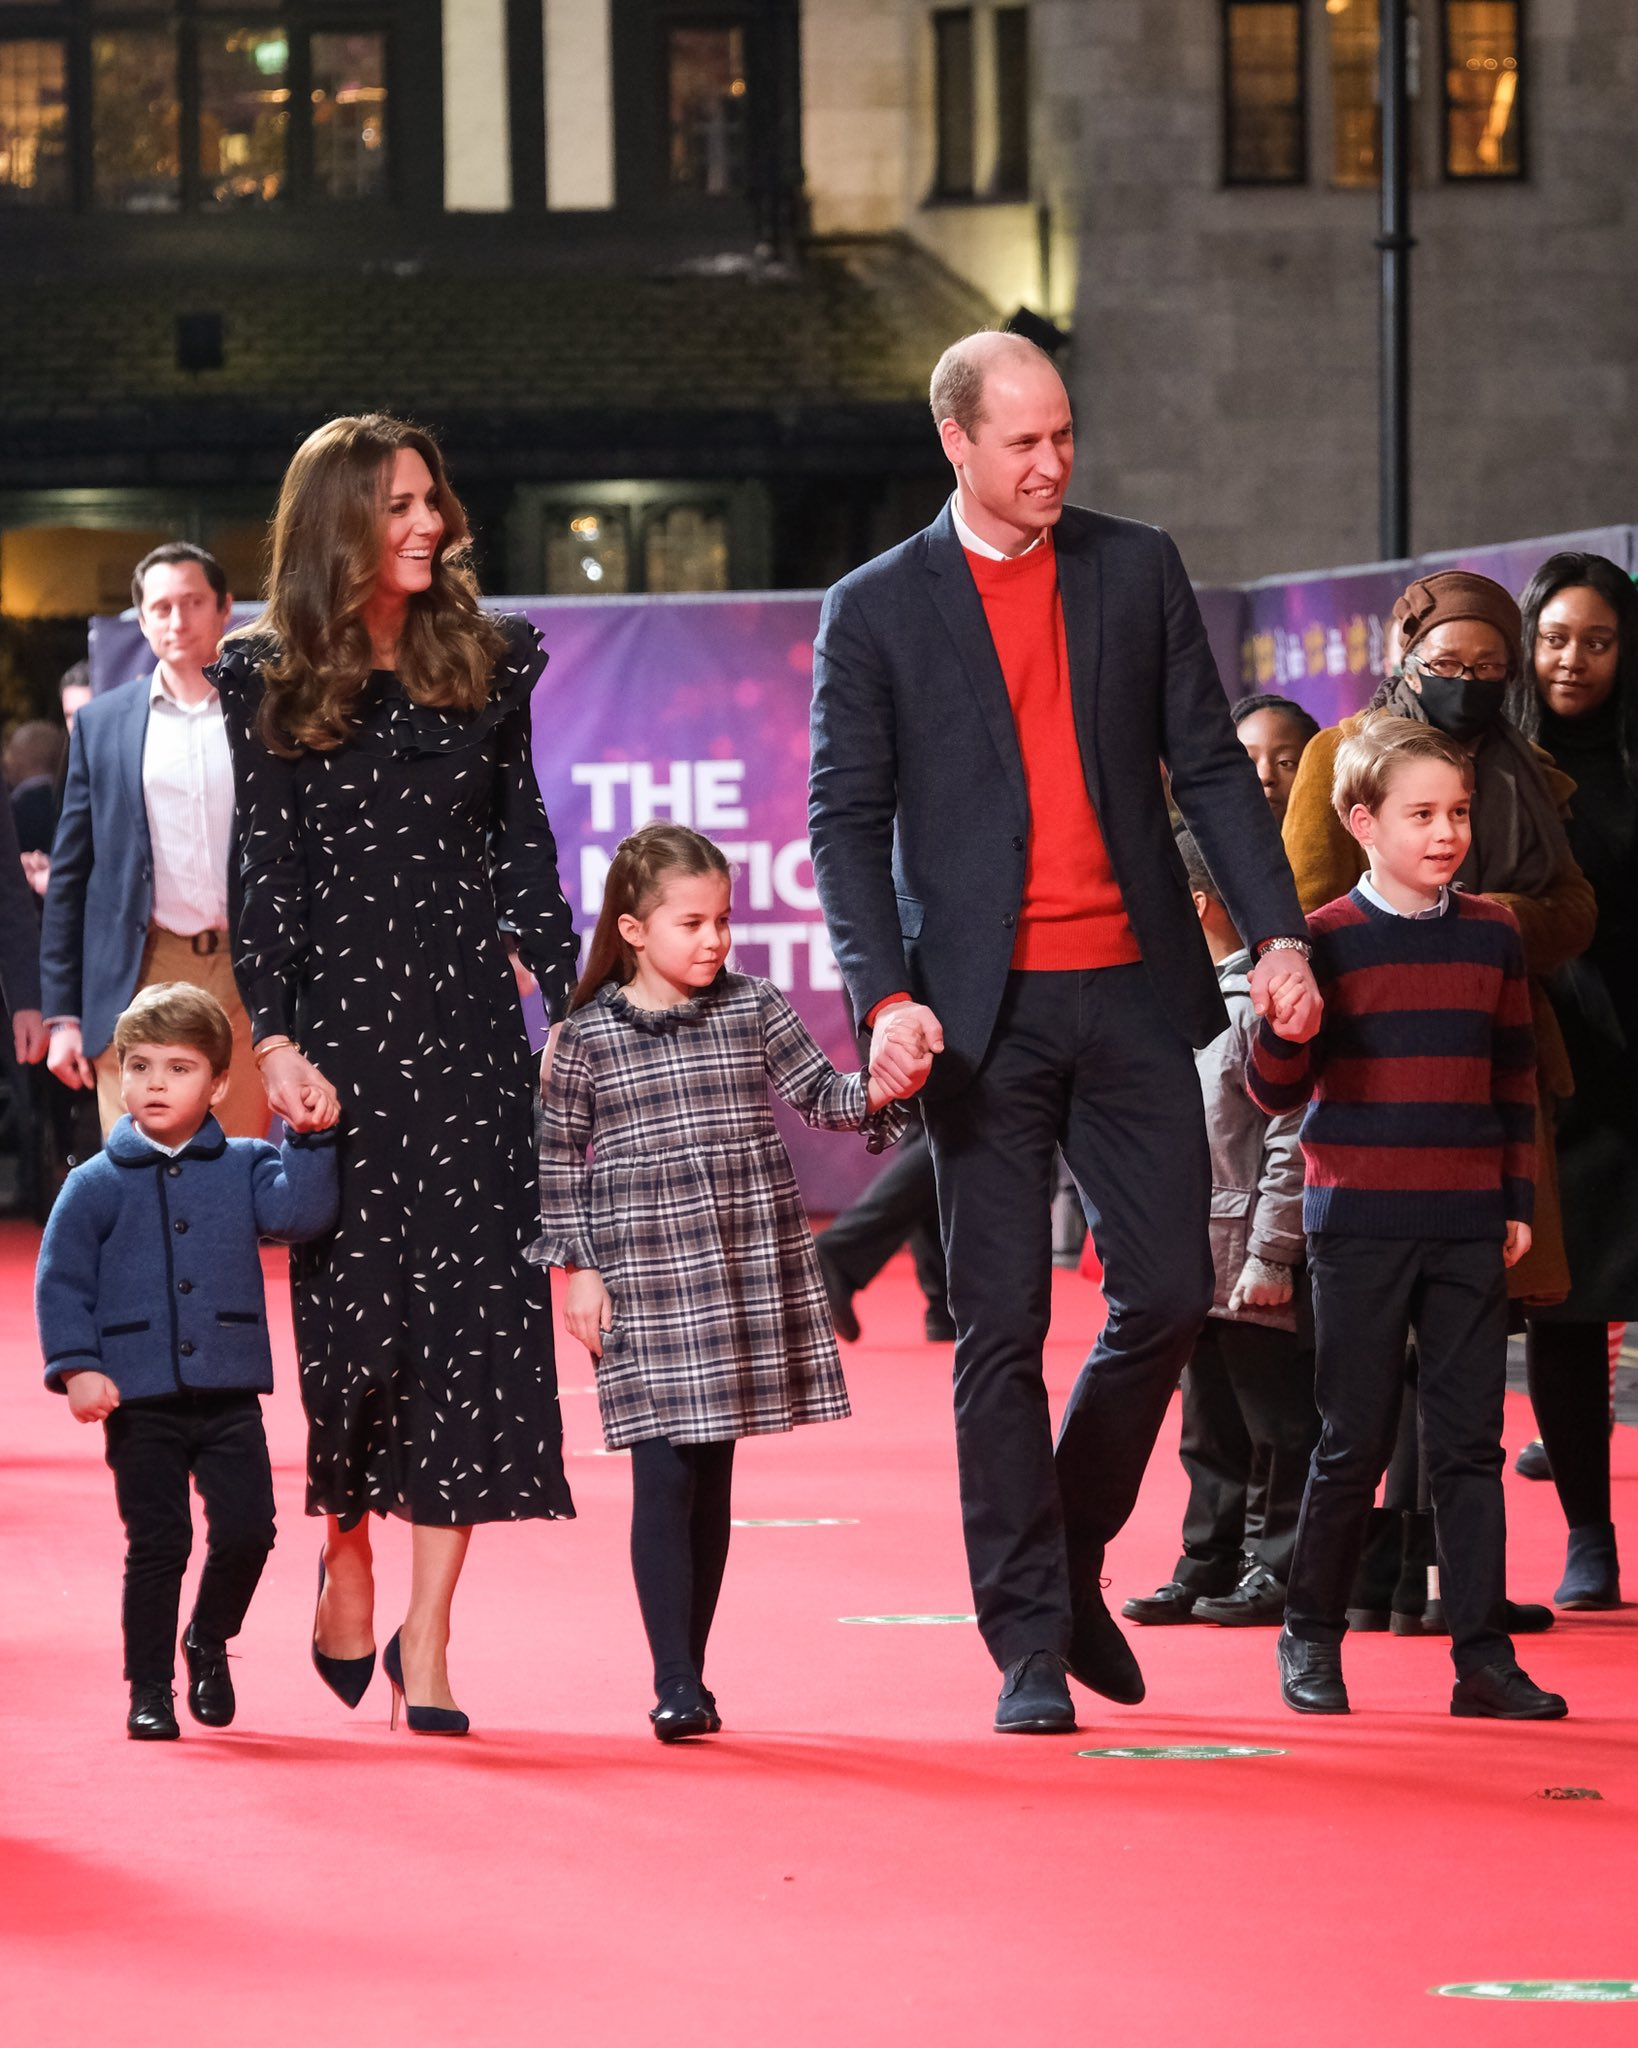 catherine-duchess-of-cambridge-wore-alessandra-rich-to-see-pantoland